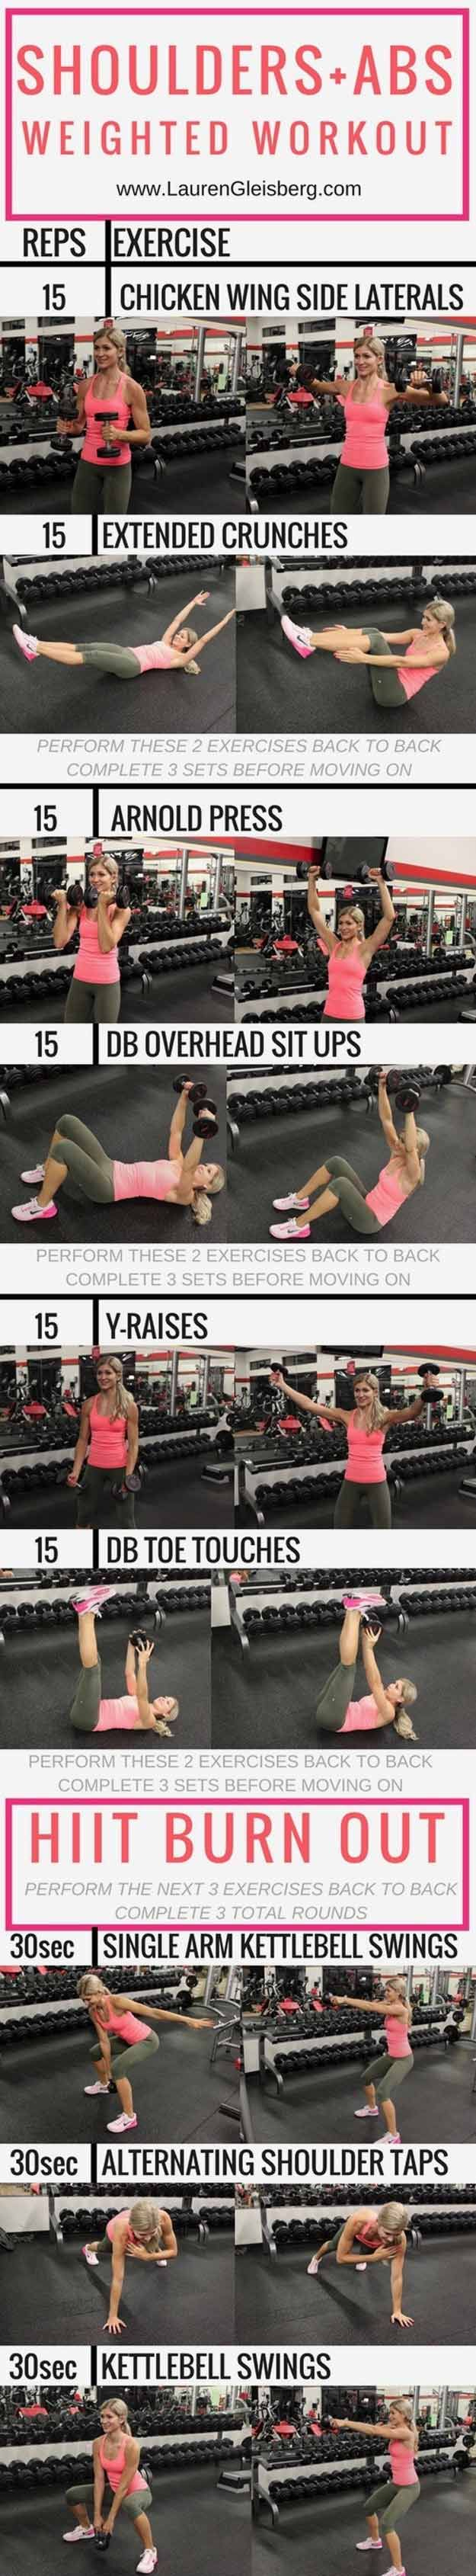 Quick Workouts You Can Do on Your Lunch Break - Shoulders + Abs Circuit Workout - Awesome Full Body Workouts You Can Do Right At Home or On Your Lunch Break- Cardio Routine for Beginners, Abs Exercises You Can Bang Out Before Shower - You Don't Need to Hi https://www.musclesaurus.com/flat-stomach-exercises/